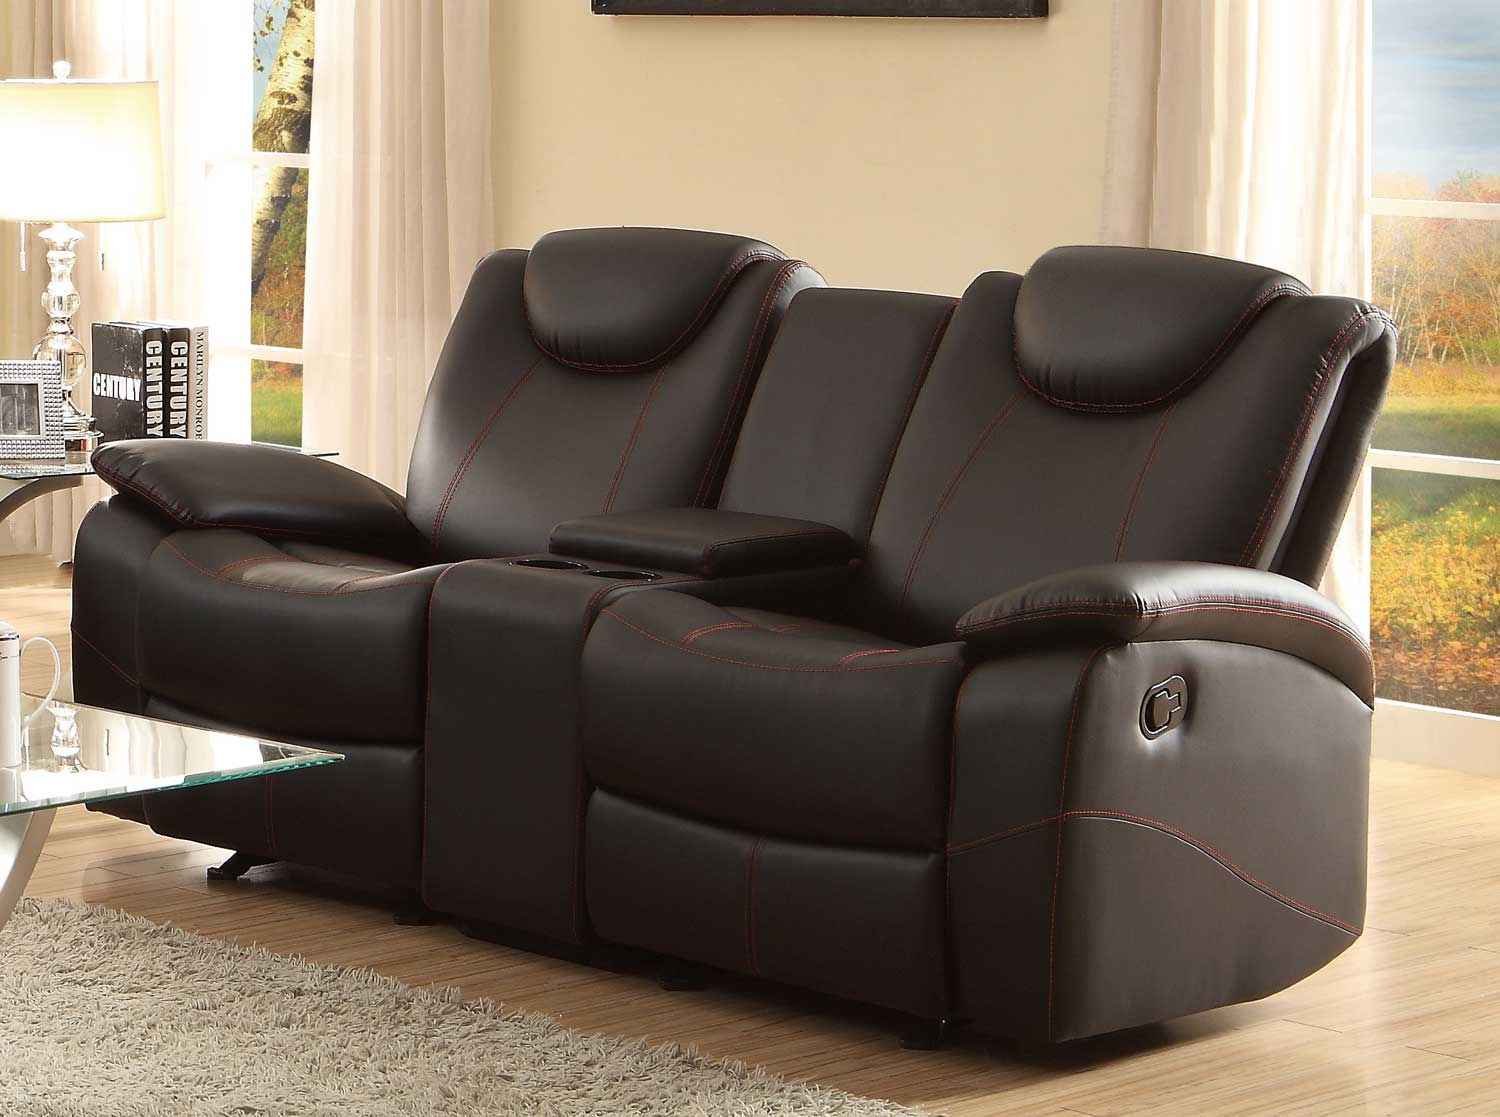 reclining club chair macy stool grey homelegance talbot double glider love seat with center console - black bonded leather ...